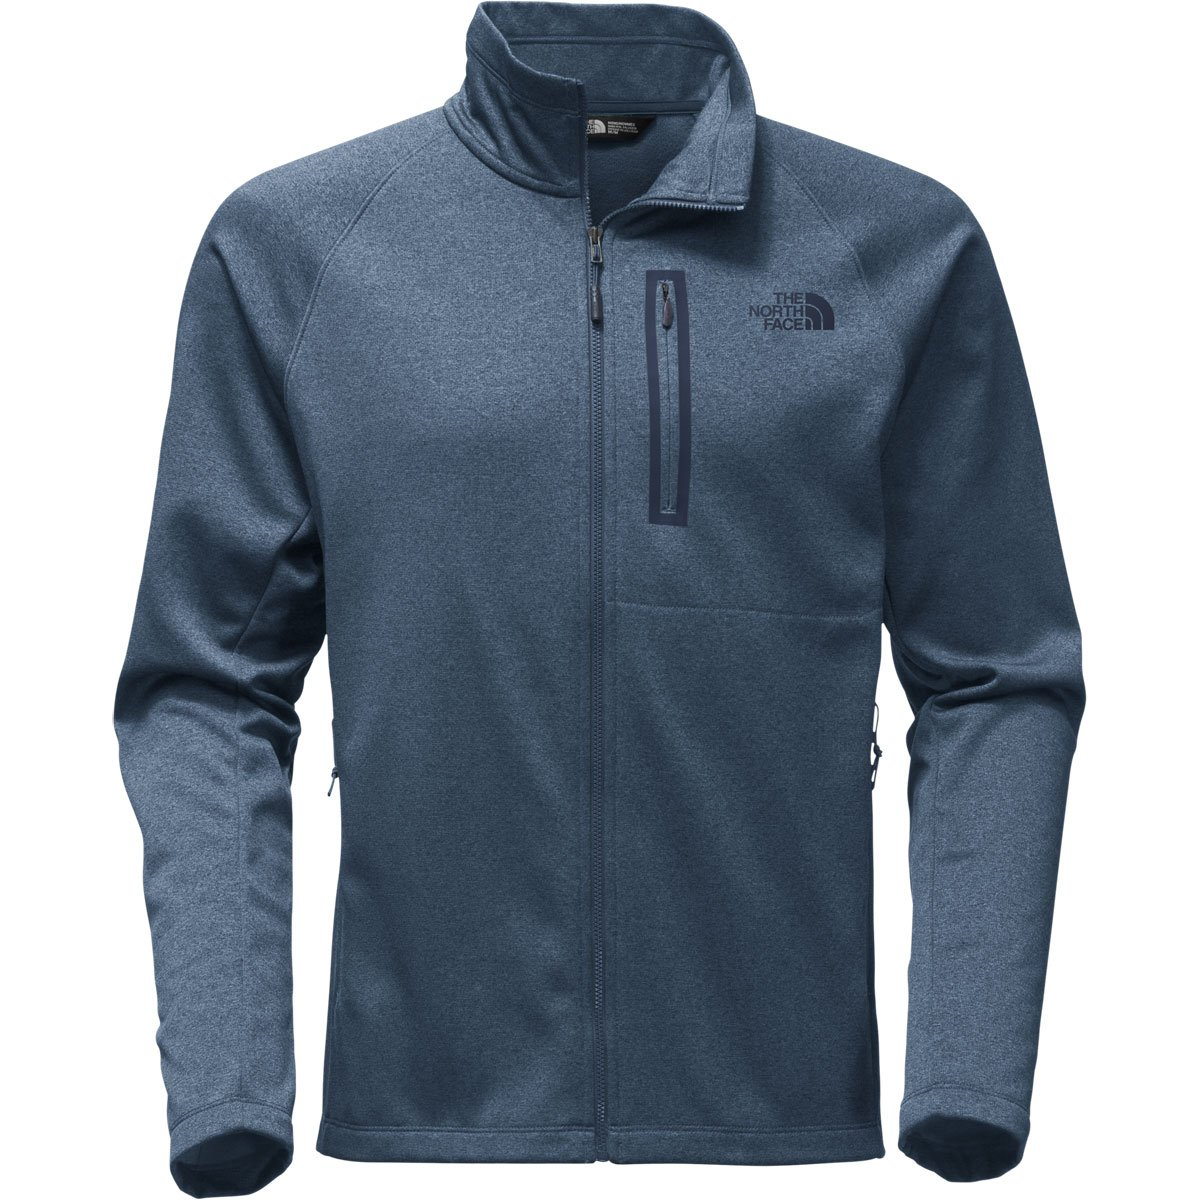 The North Face Men's Canyonlands Full Zip Shady Blue Heather - M